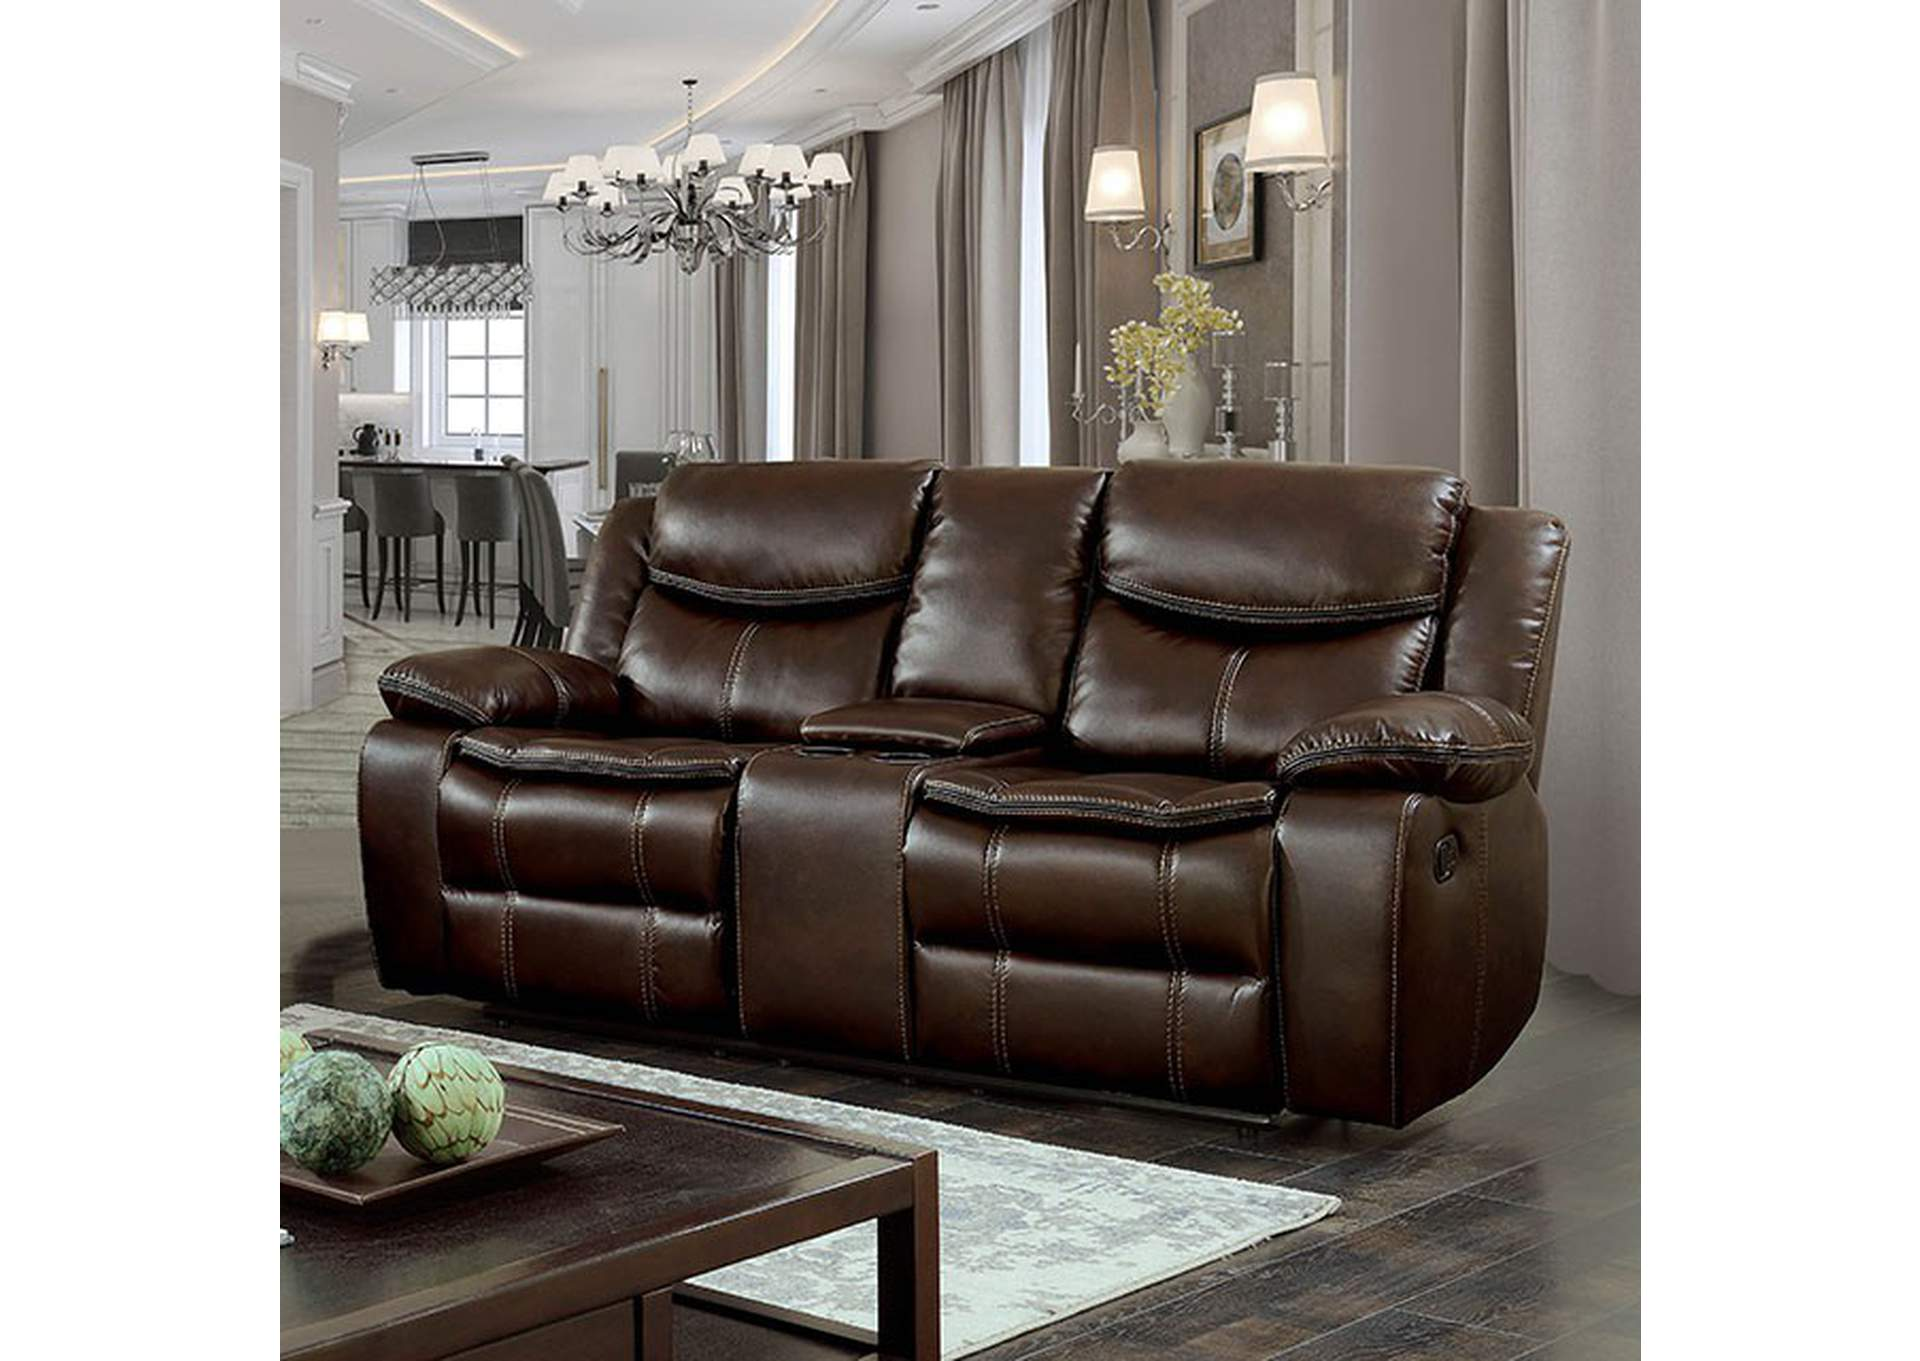 Pollu Brown Leather Reclining Loveseat,Furniture of America